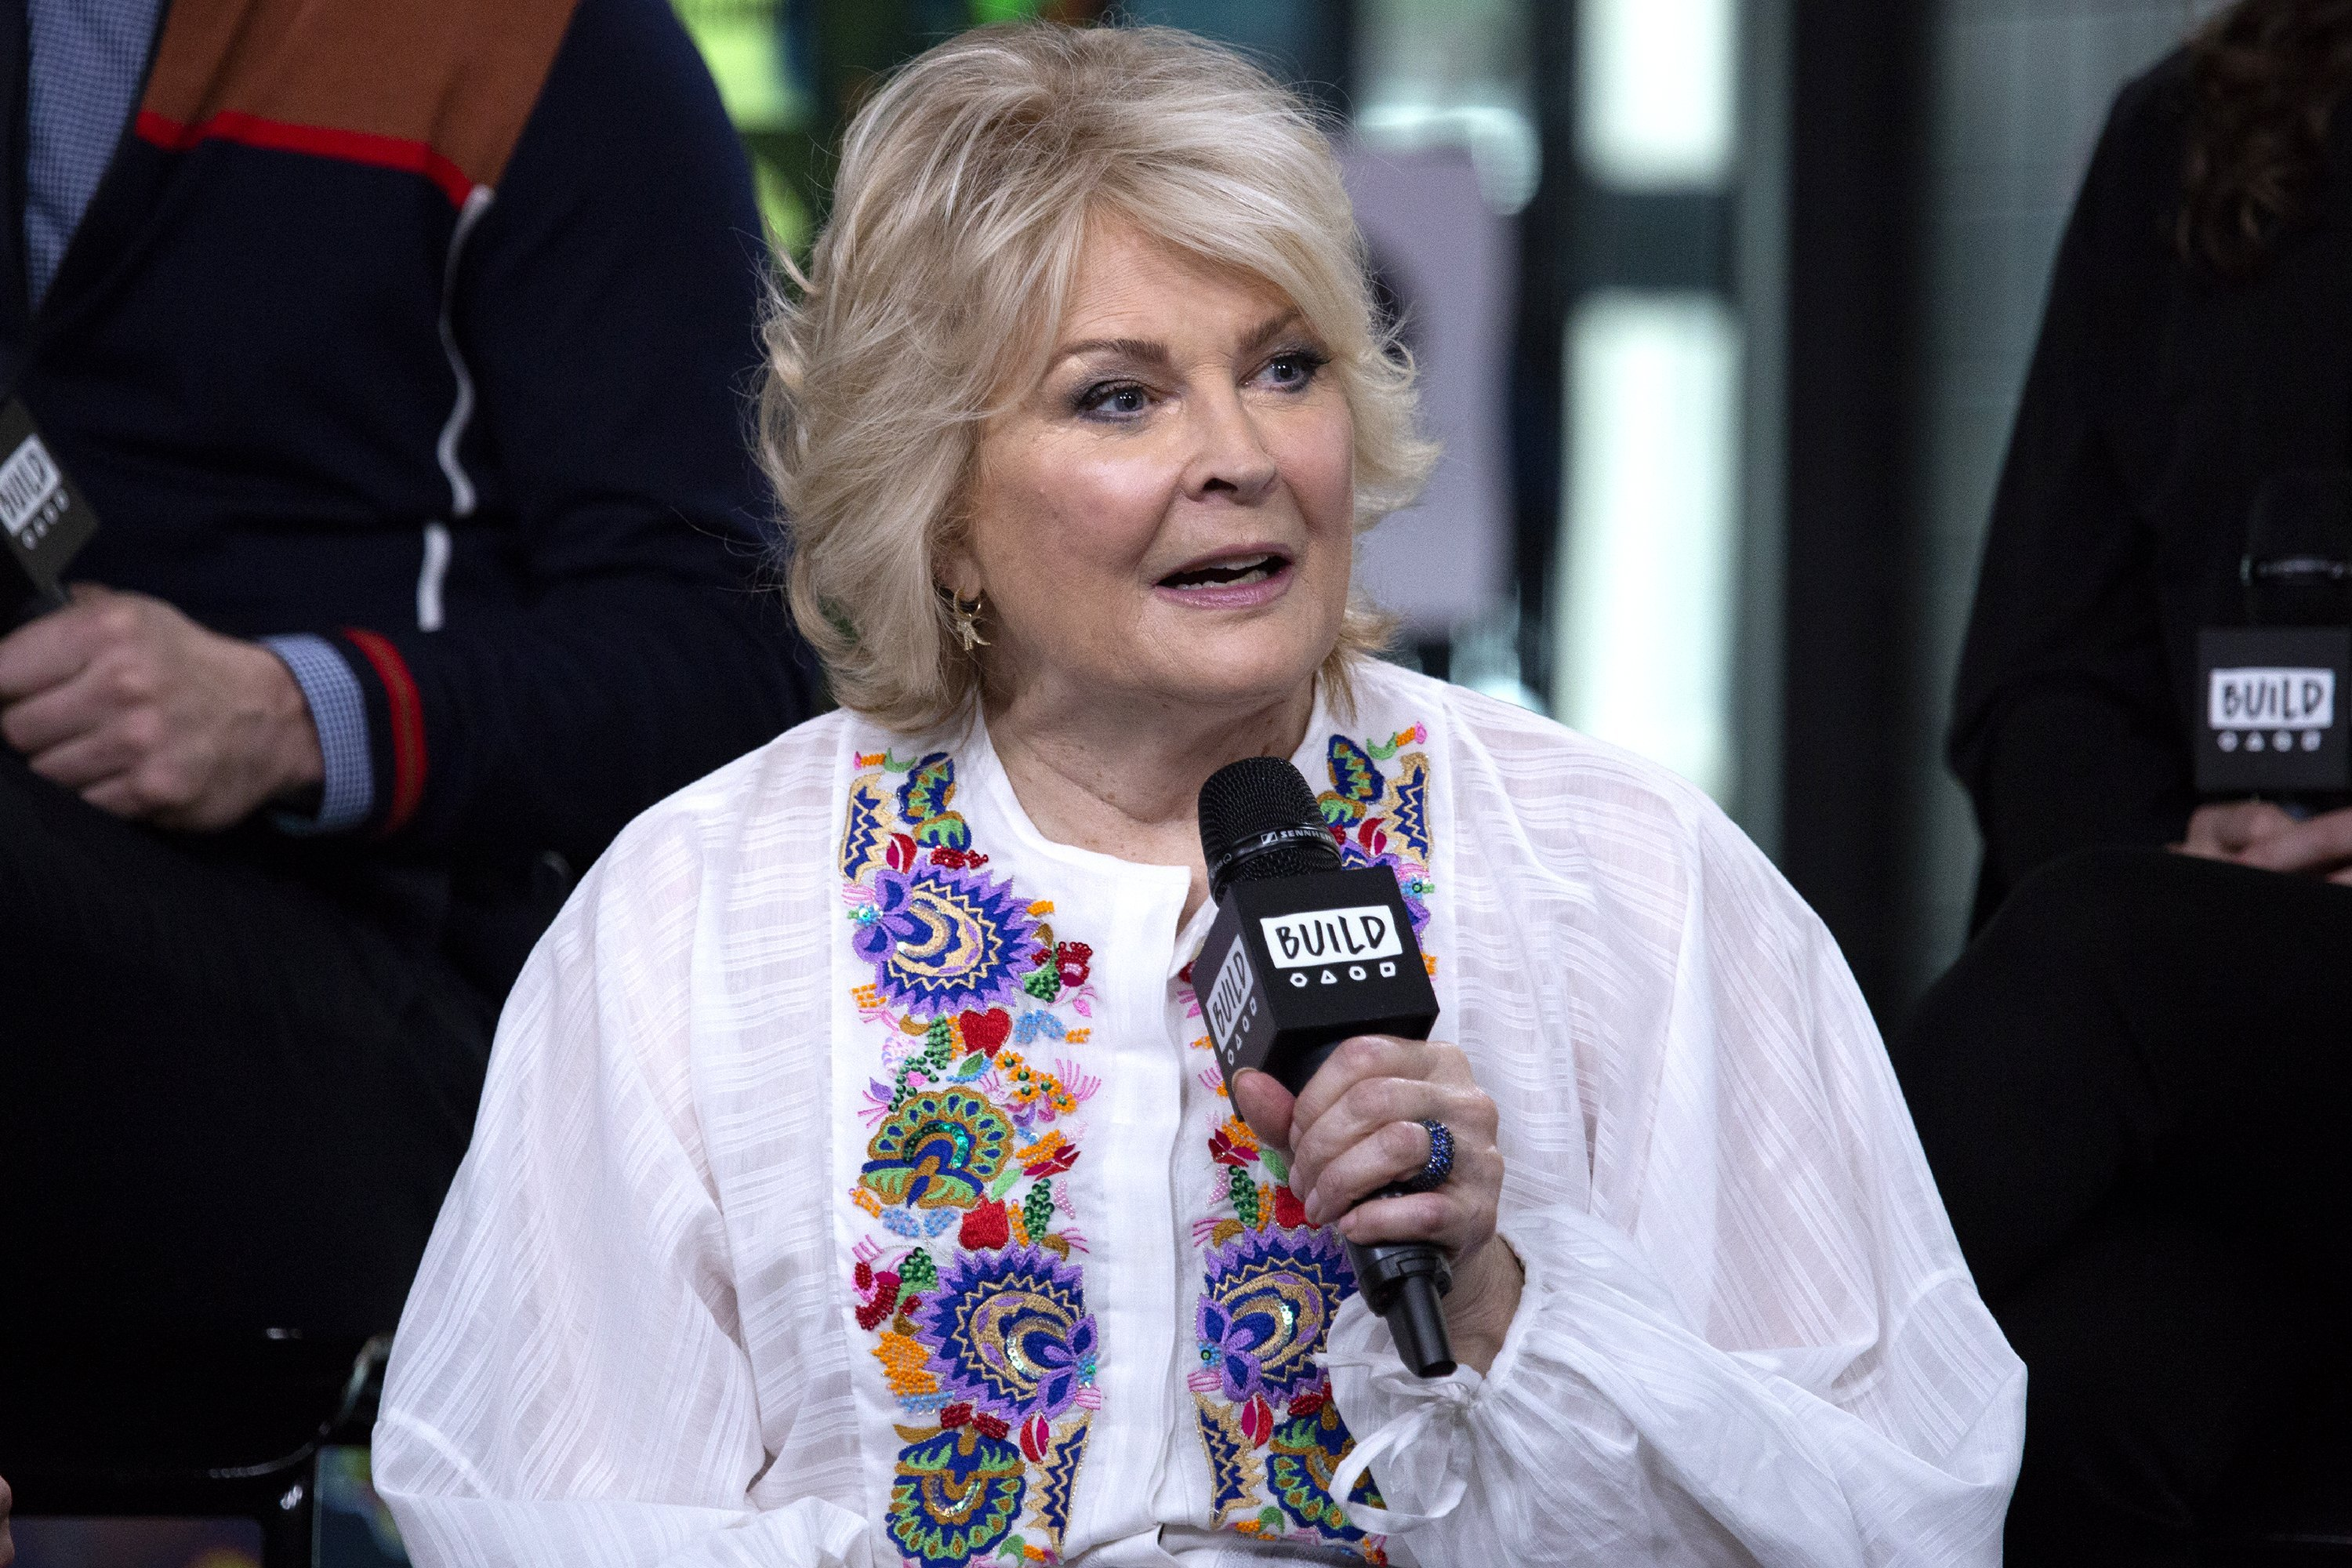 Candice Bergen visits AOL Build at Build Studio on May 15, 2018. | Photo: Getty Images